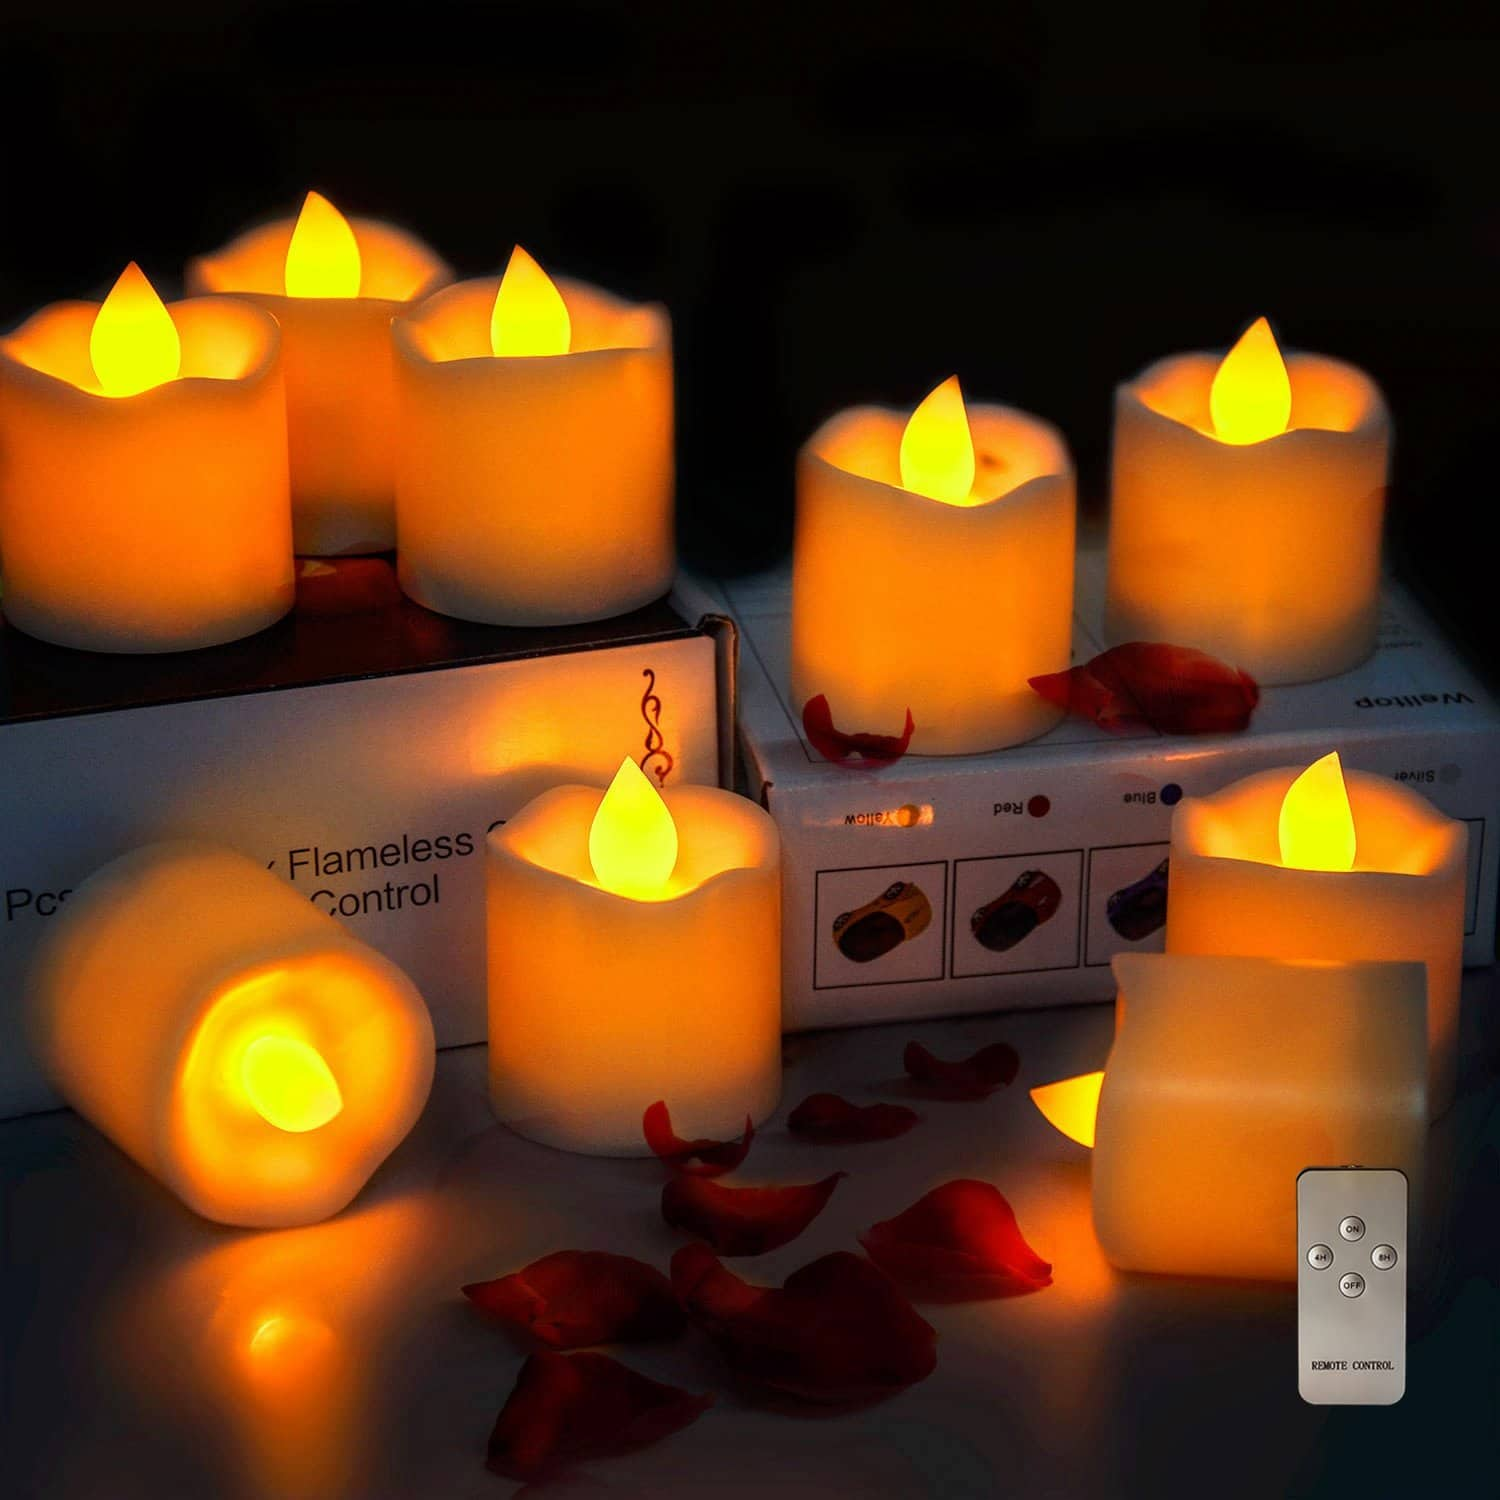 Intsun (Set of 9 Flameless Candles) Battery Operated w/ Remote Timer LED Candles Pillar, Tea Lights $7.94 @ Amazon FS w/ Prime